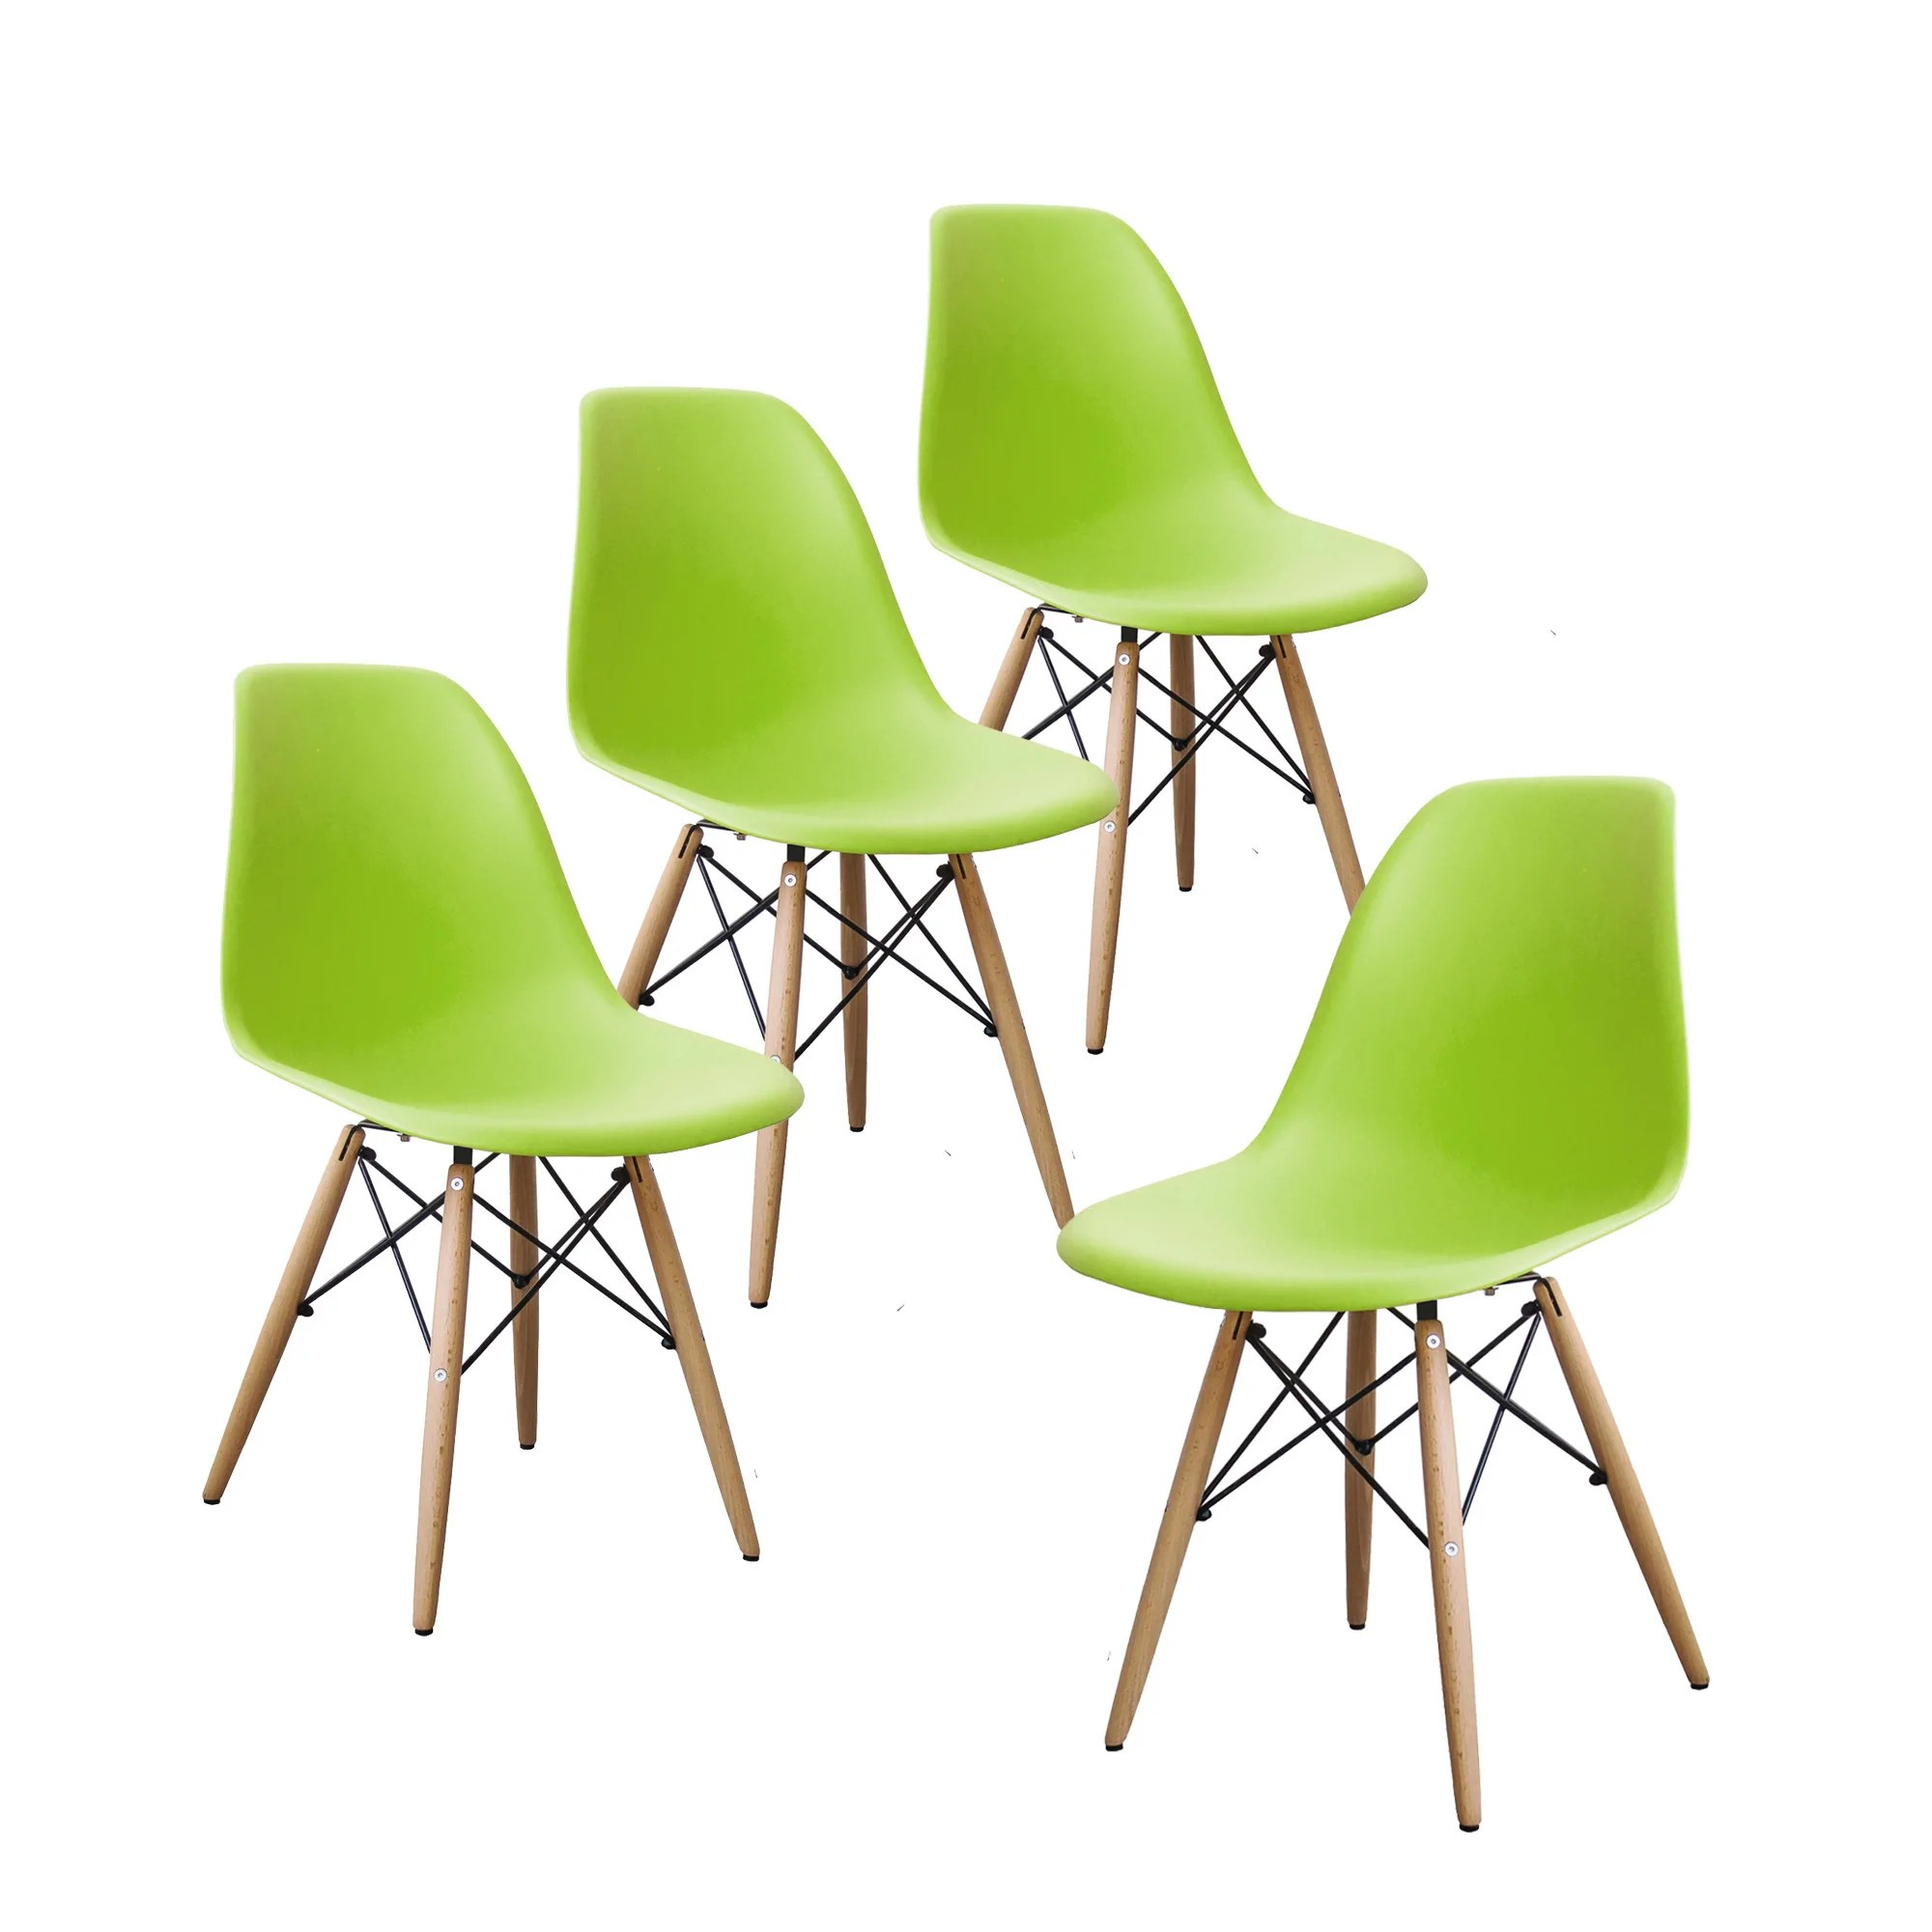 modern green dining chairs inflatable bean bag chair buschman set of 4 eames mid century store